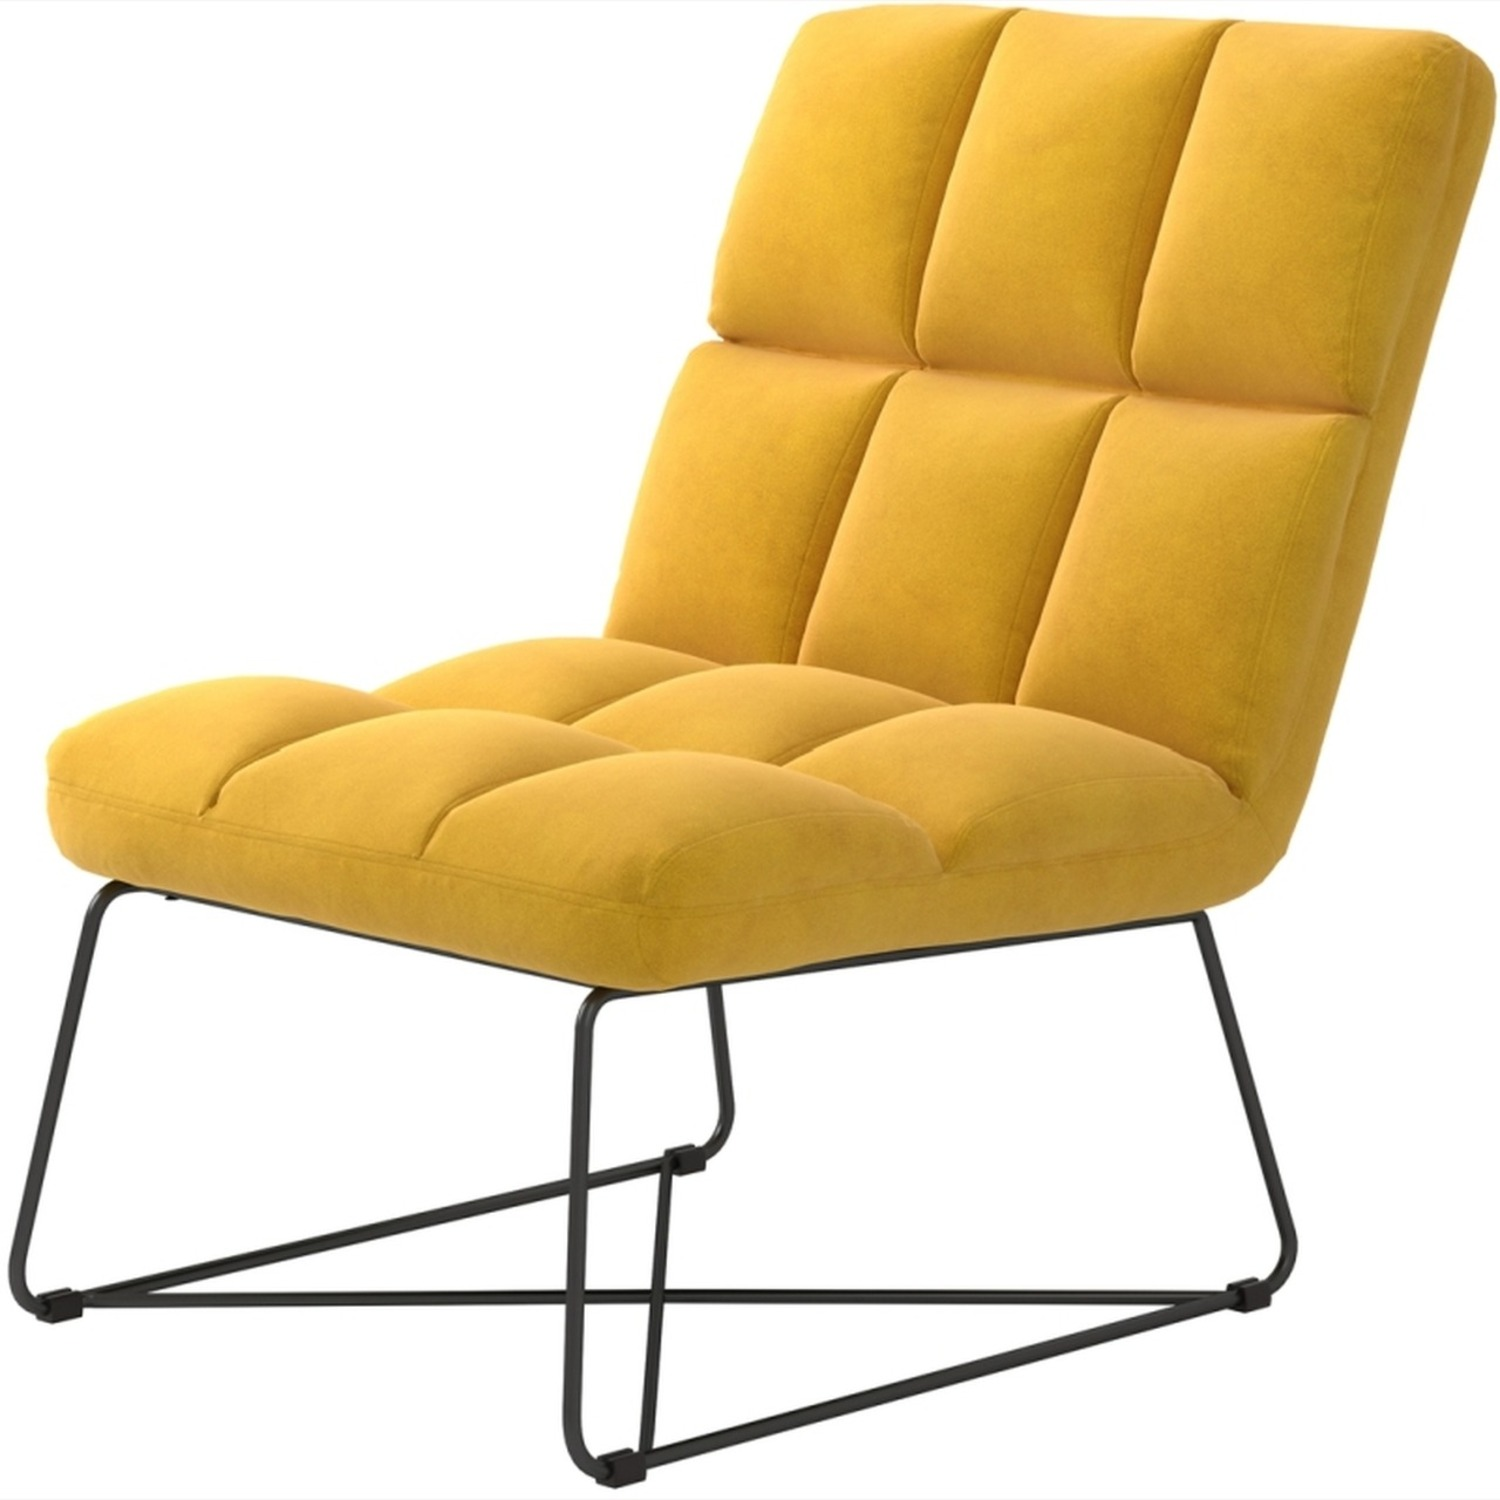 Accent Chair In Burnt Yellow Fabric & Grid Details - image-1